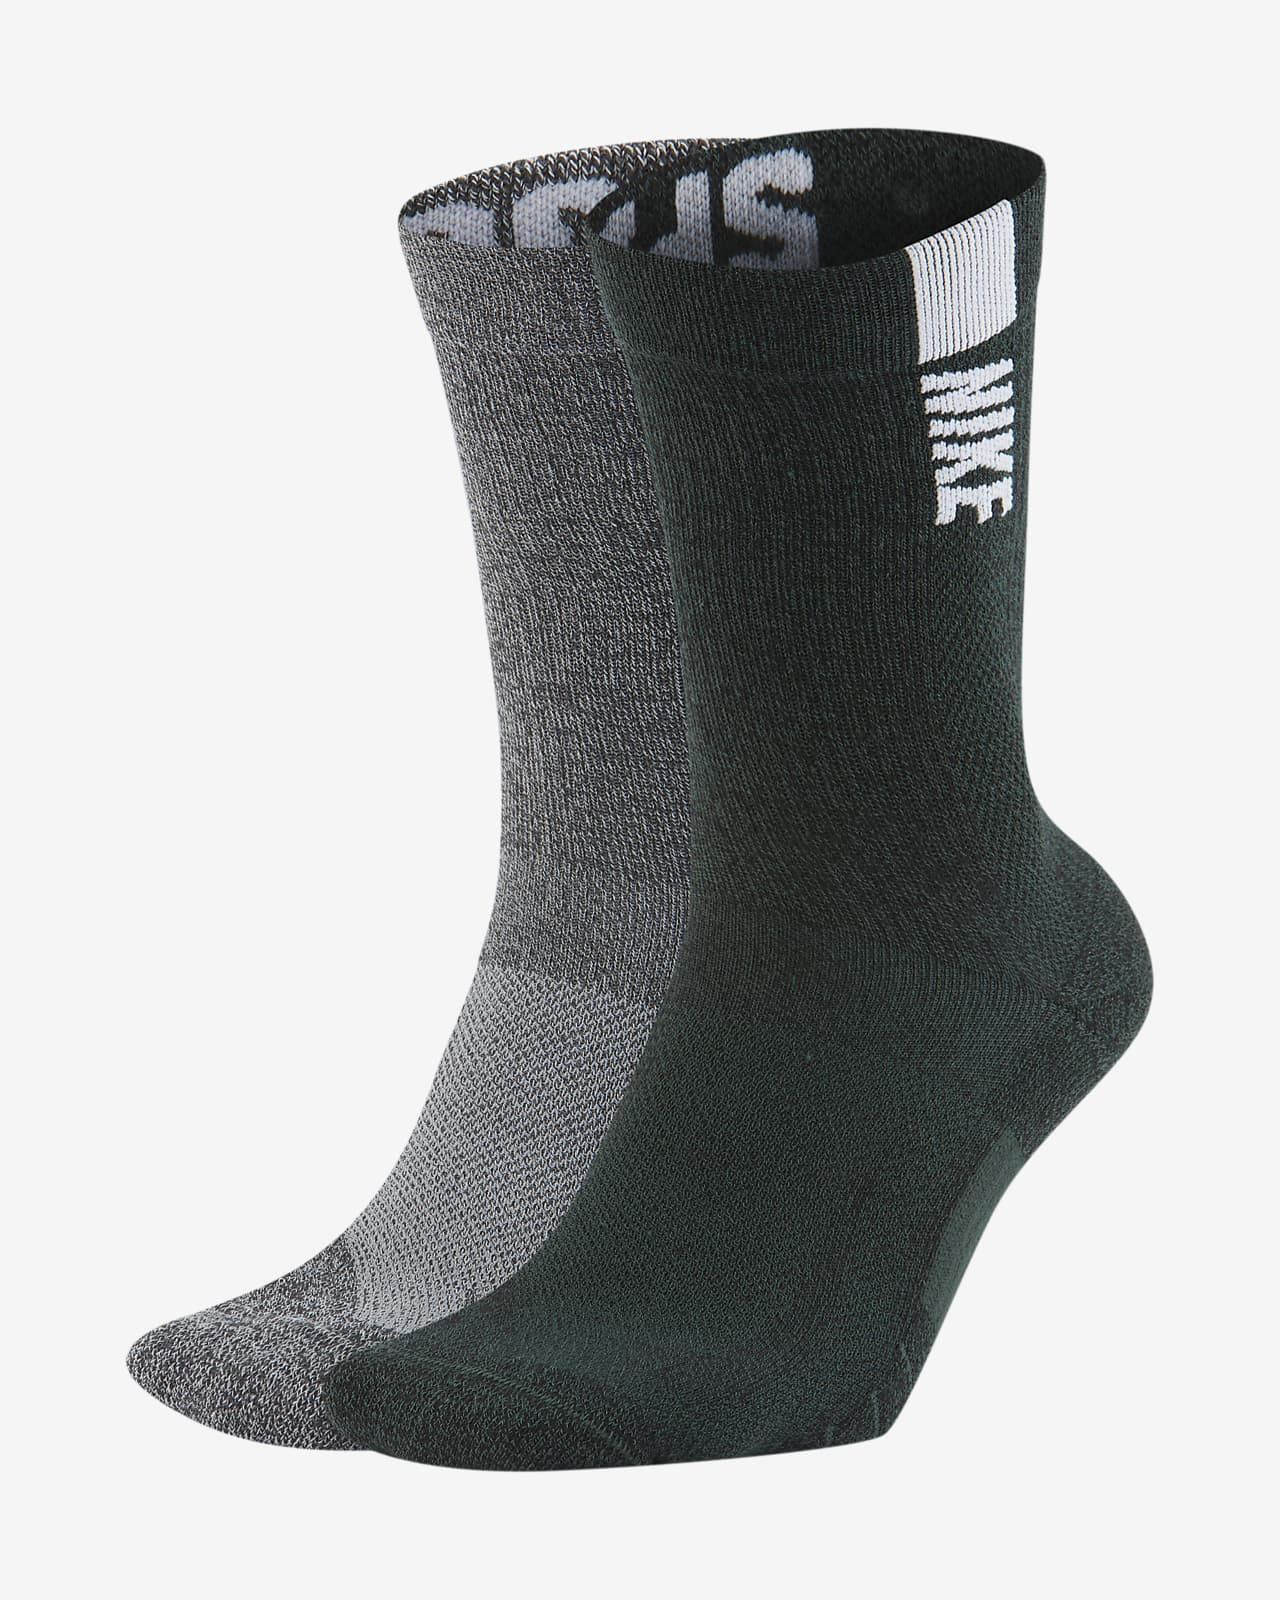 Nike College Multiplier (Michigan State) Crew Socks (2 Pairs)